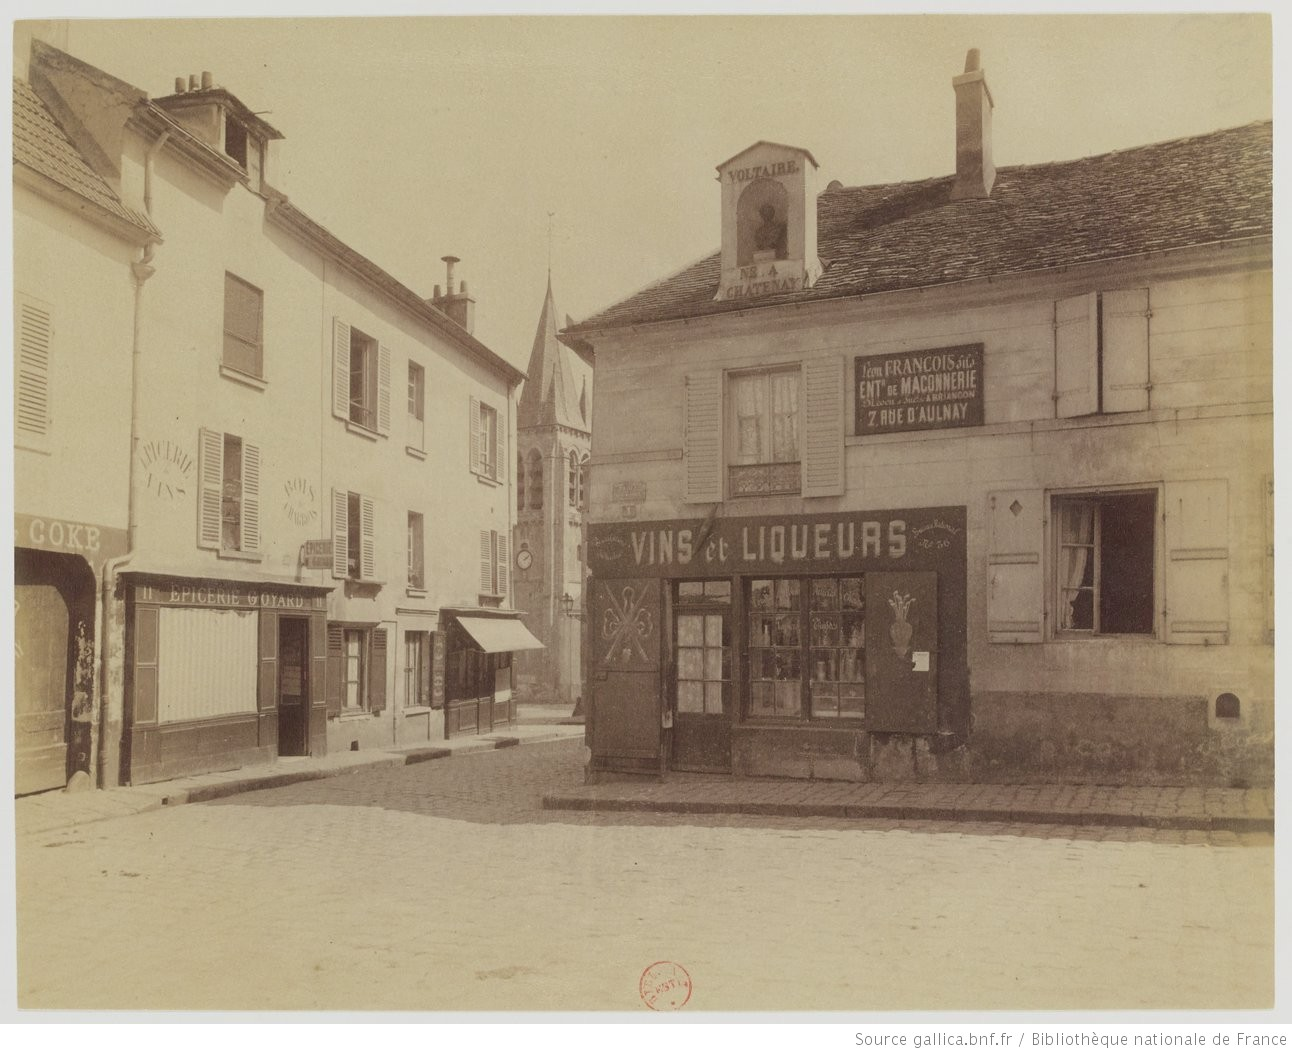 Photograph taken by Eugène Atget in Châtenay in 1901. Note the niche on the roof with a bust of Voltaire and the words 'Voltaire né à Chatenay'. Source: http://gallica.bnf.fr/ark:/12148/btv1b105194234/f1.item